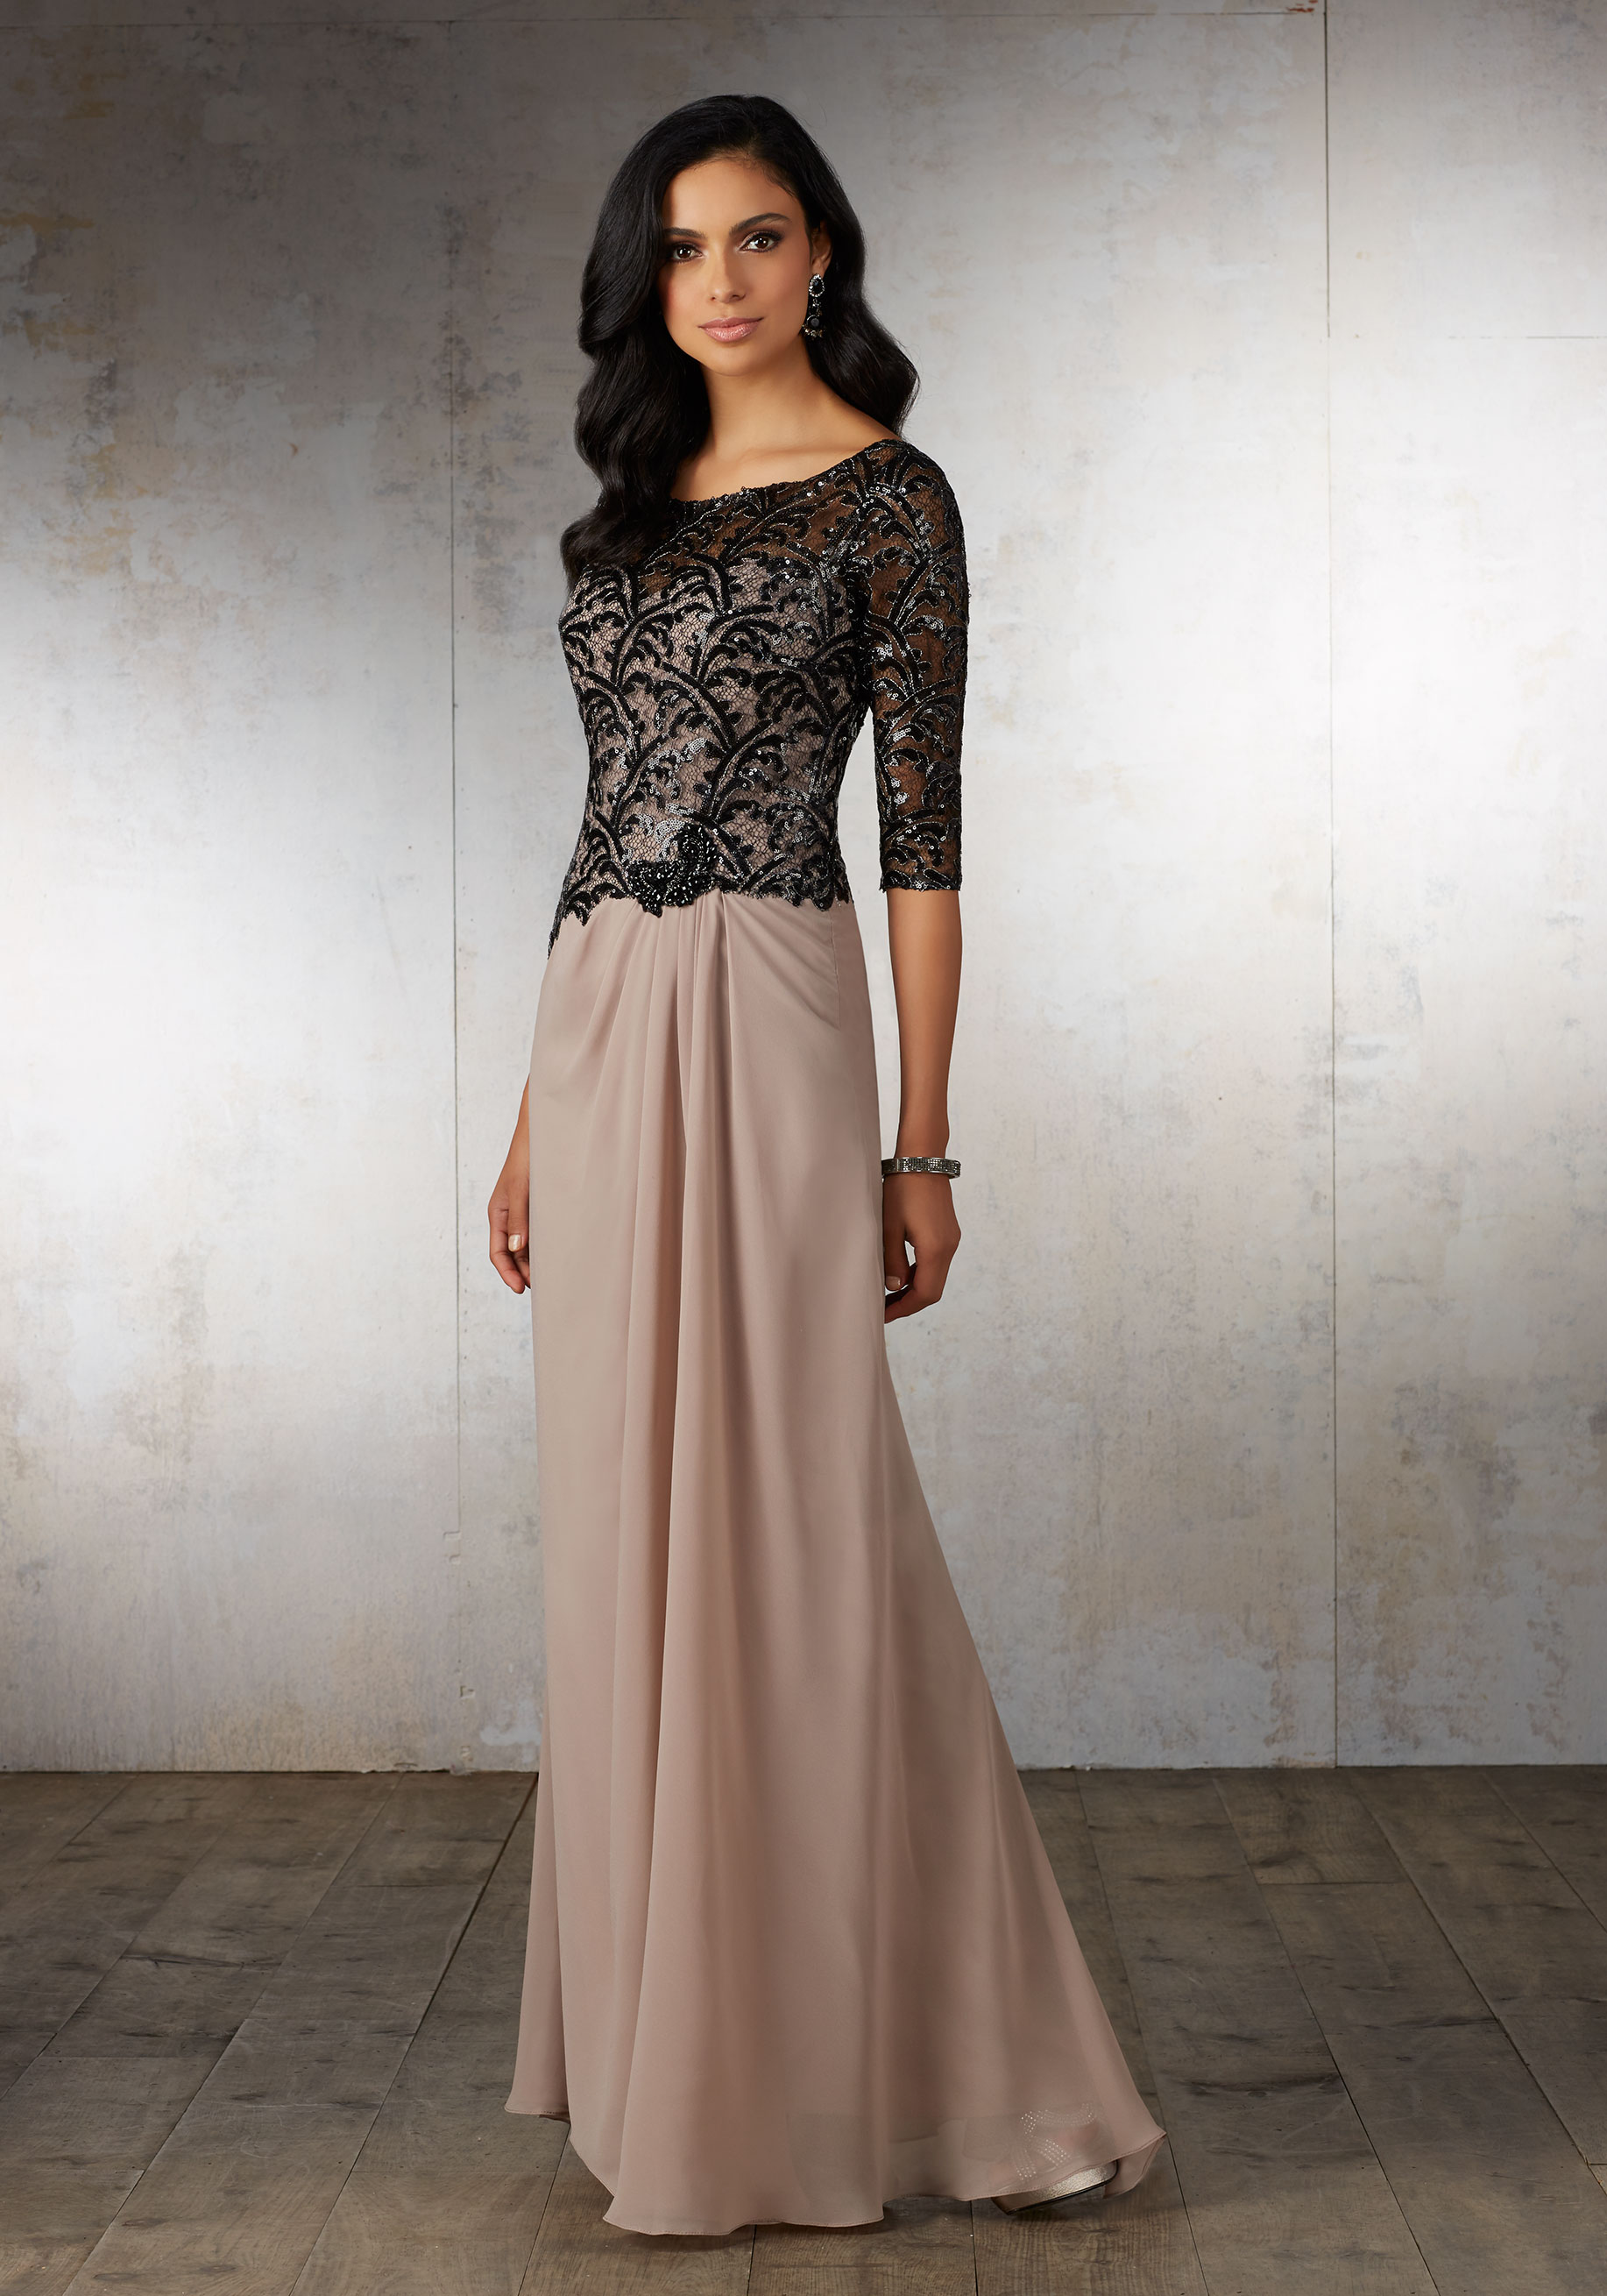 special occasion evening dresses photo - 1